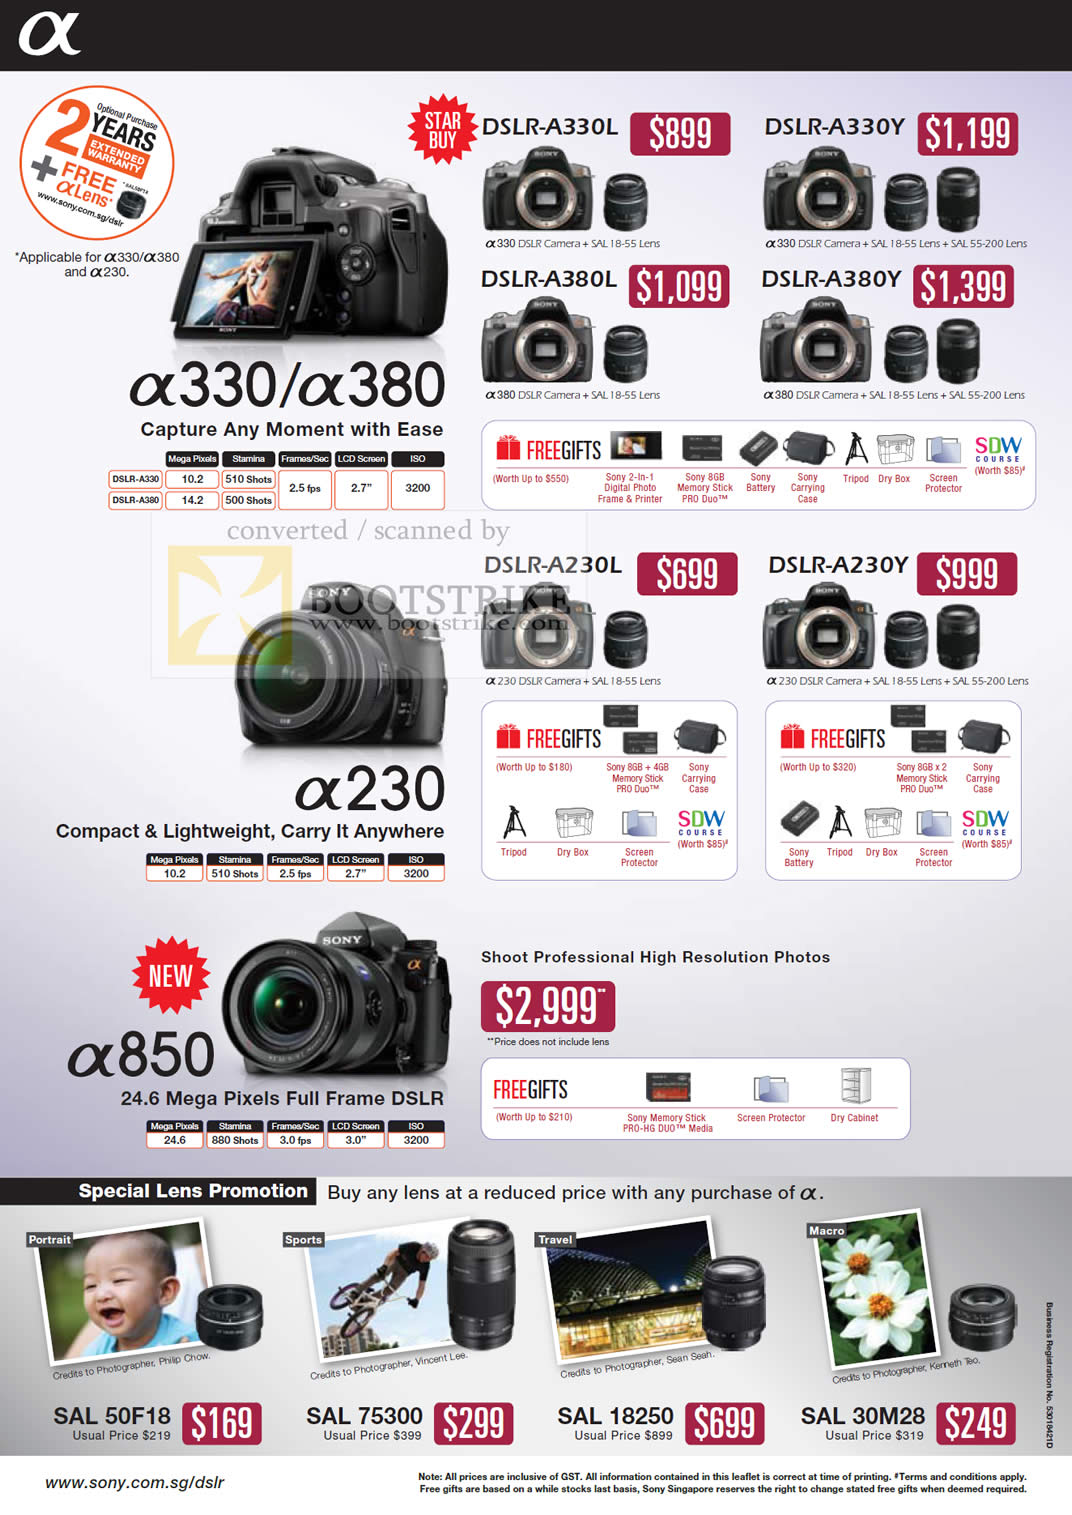 Camera Sony Dslr Camera Price List sony alpha digital dslr cameras a330 a380 a230 a850 lens sitex 2009 price list image brochure of a850